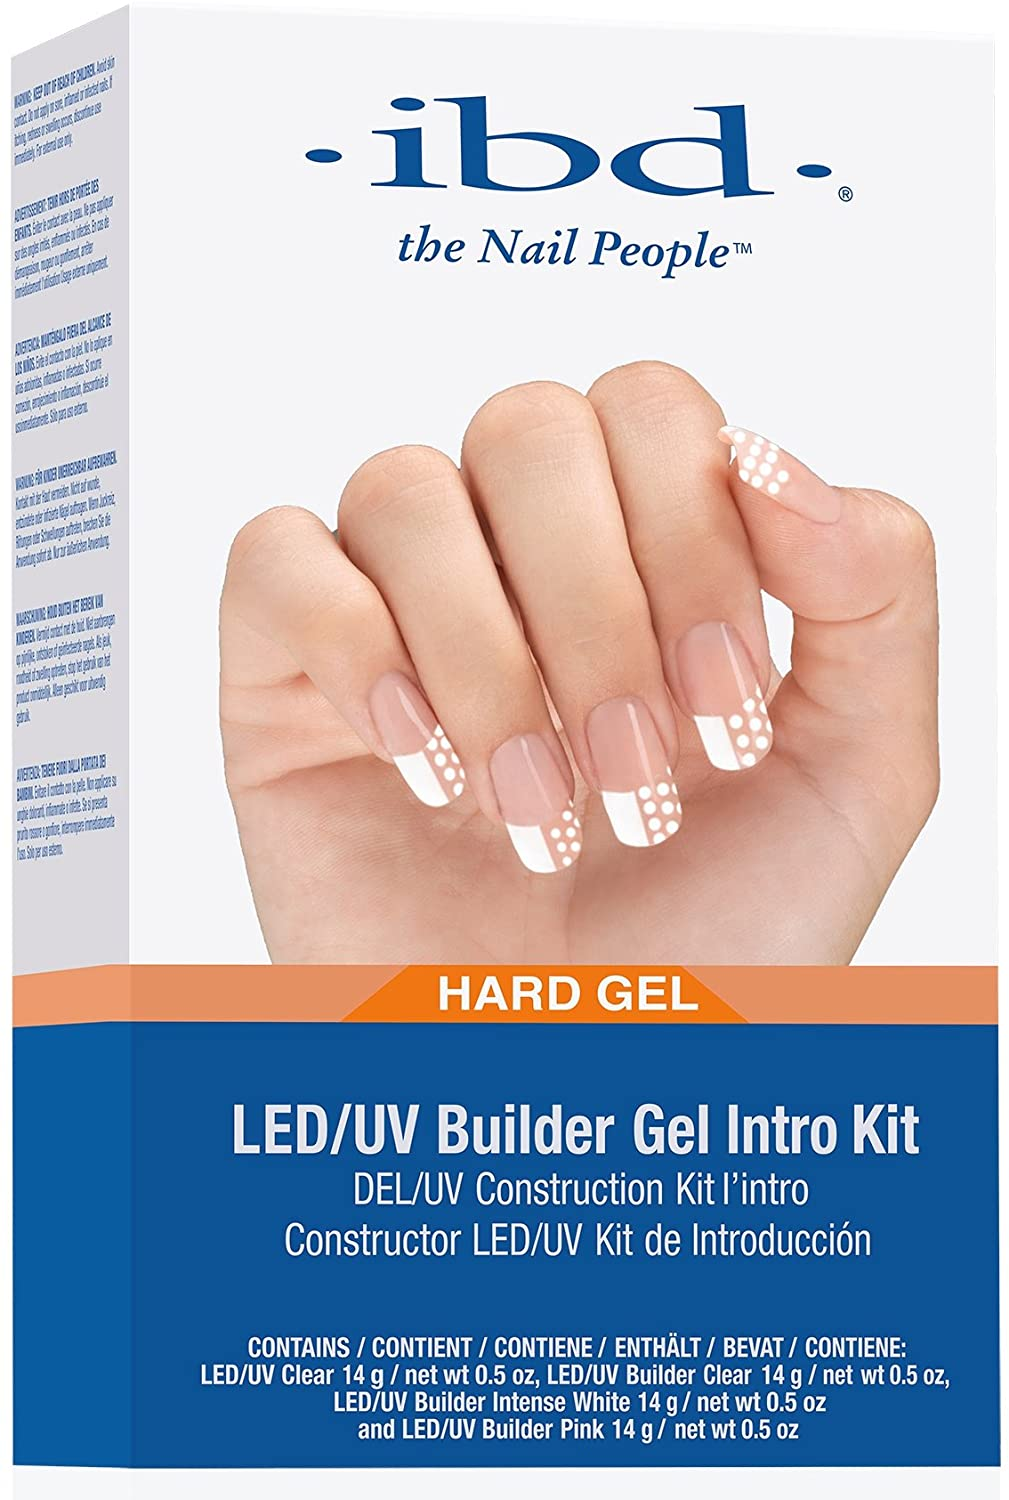 LED/UV Builder gel kit